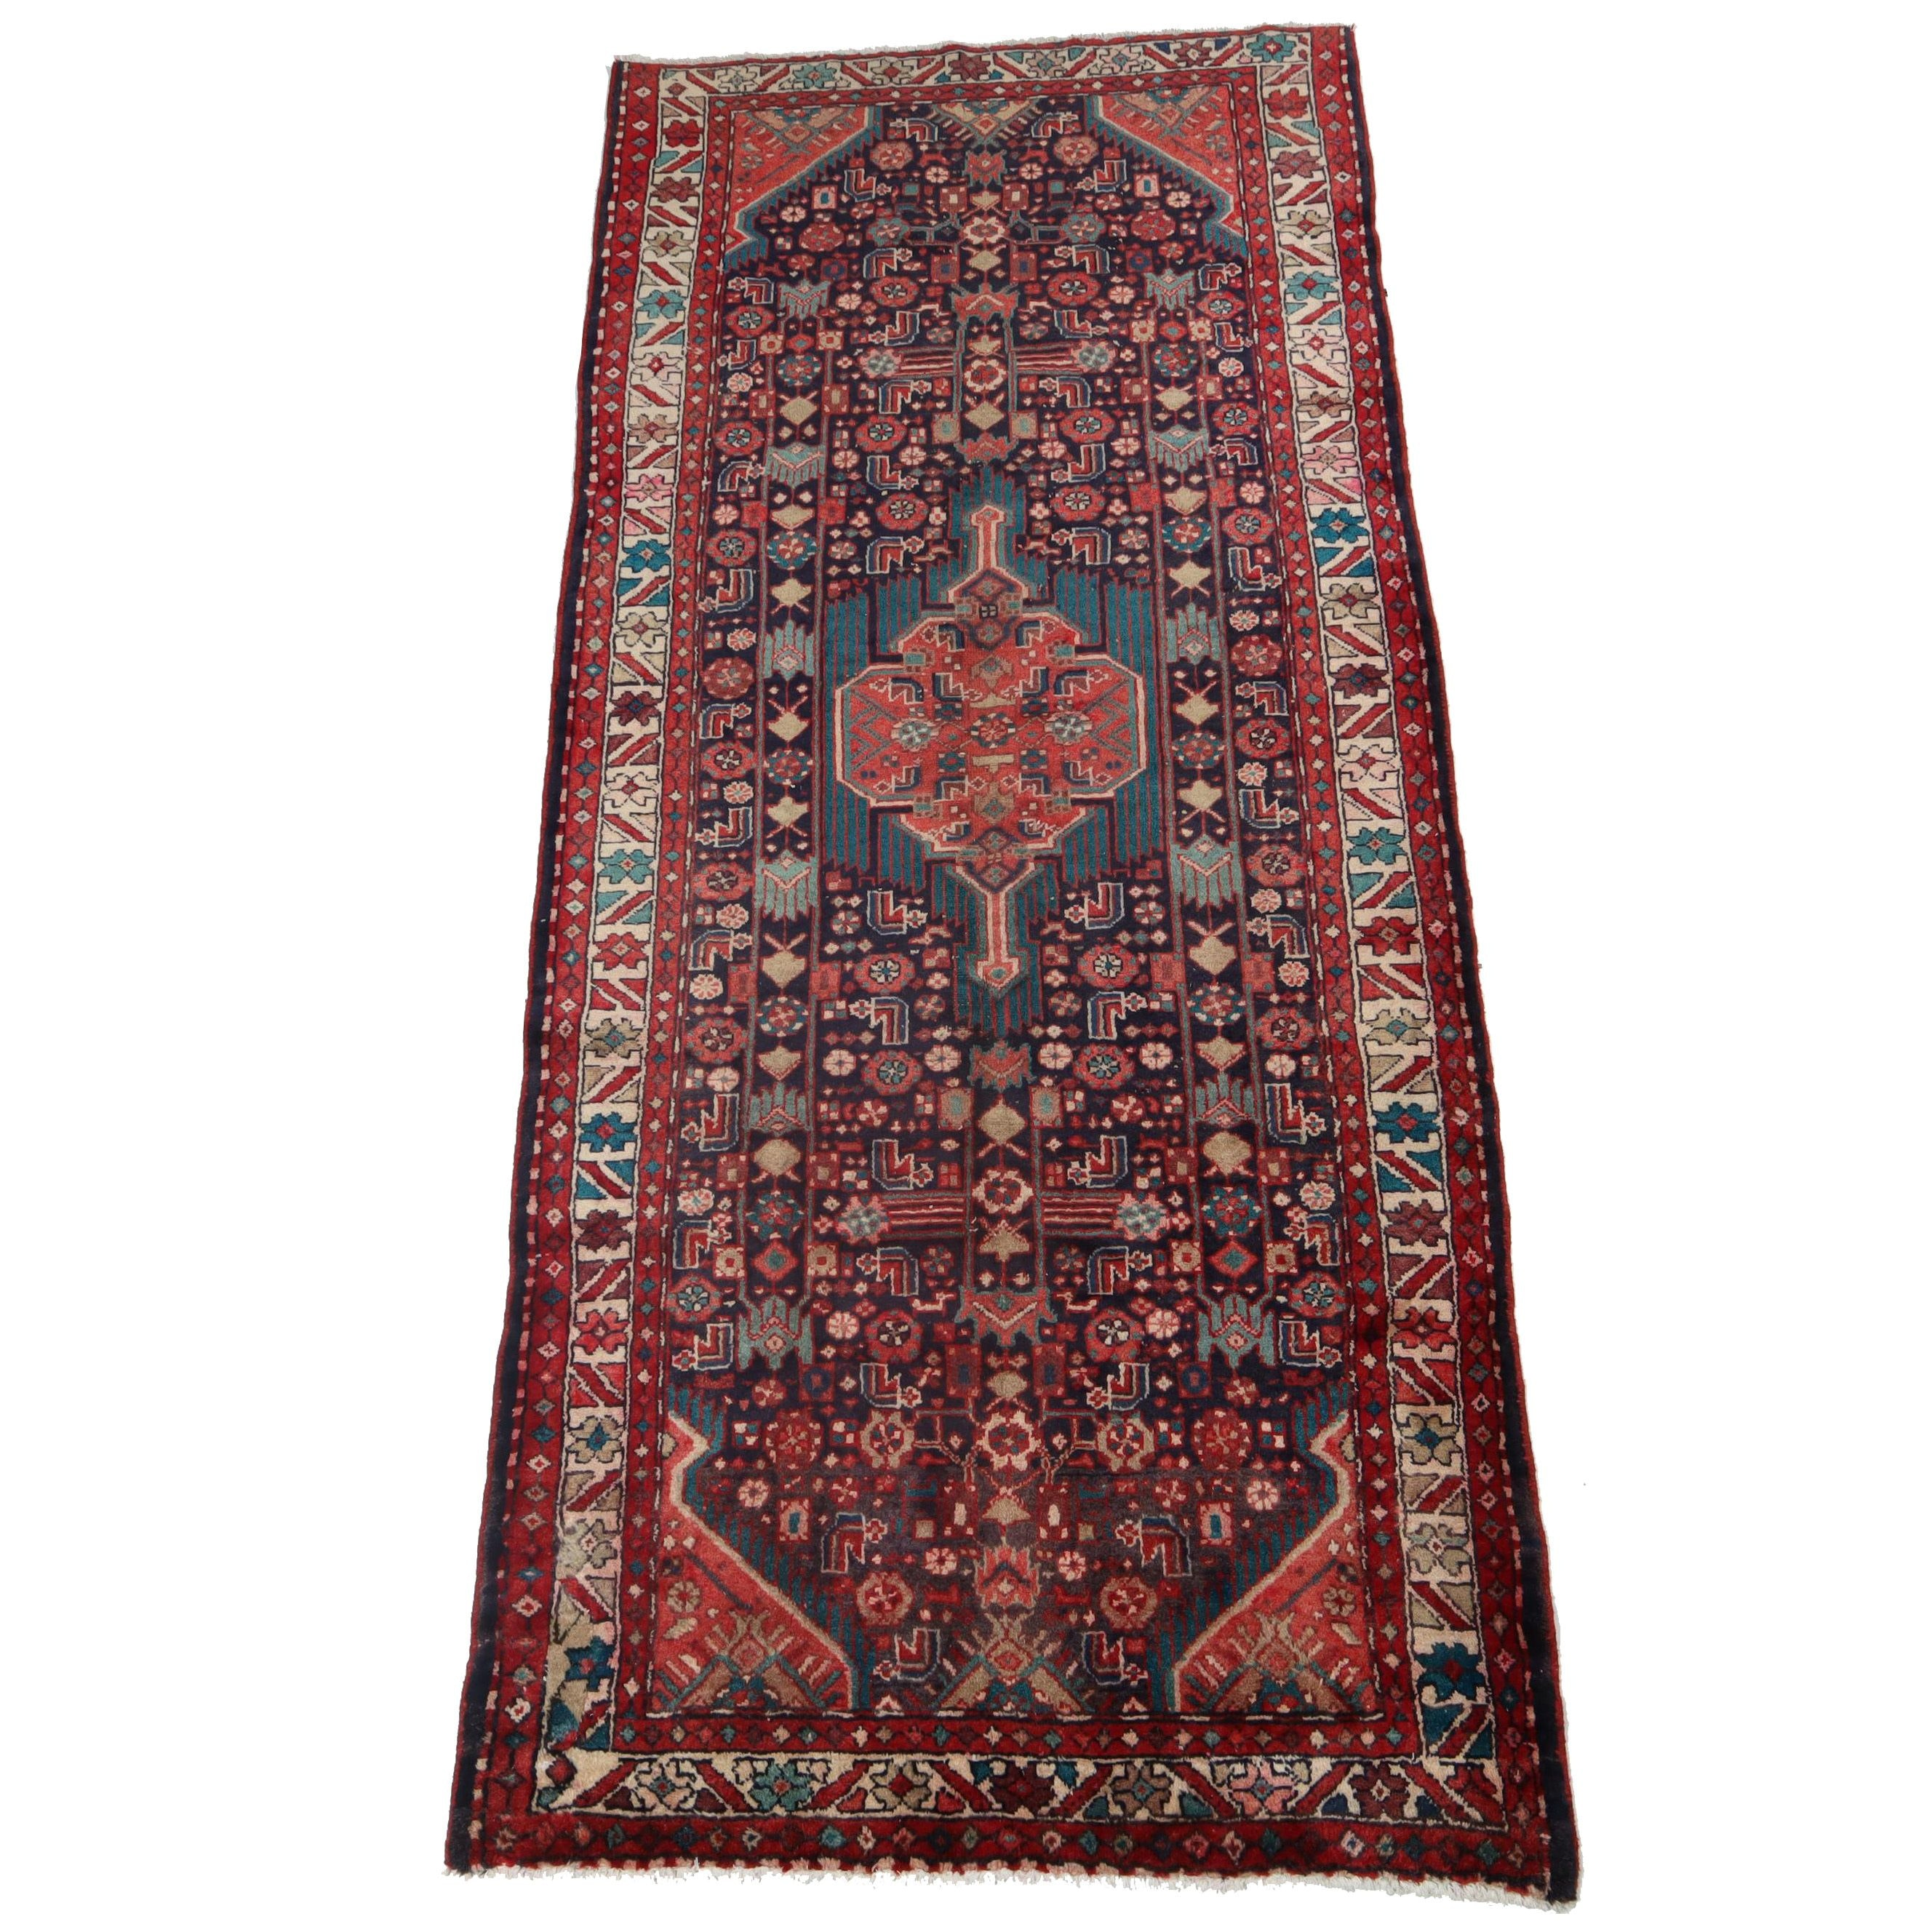 4.4' x 9.9' Hand-Knotted Persian Northwest Carpet Runner, Circa 1940s